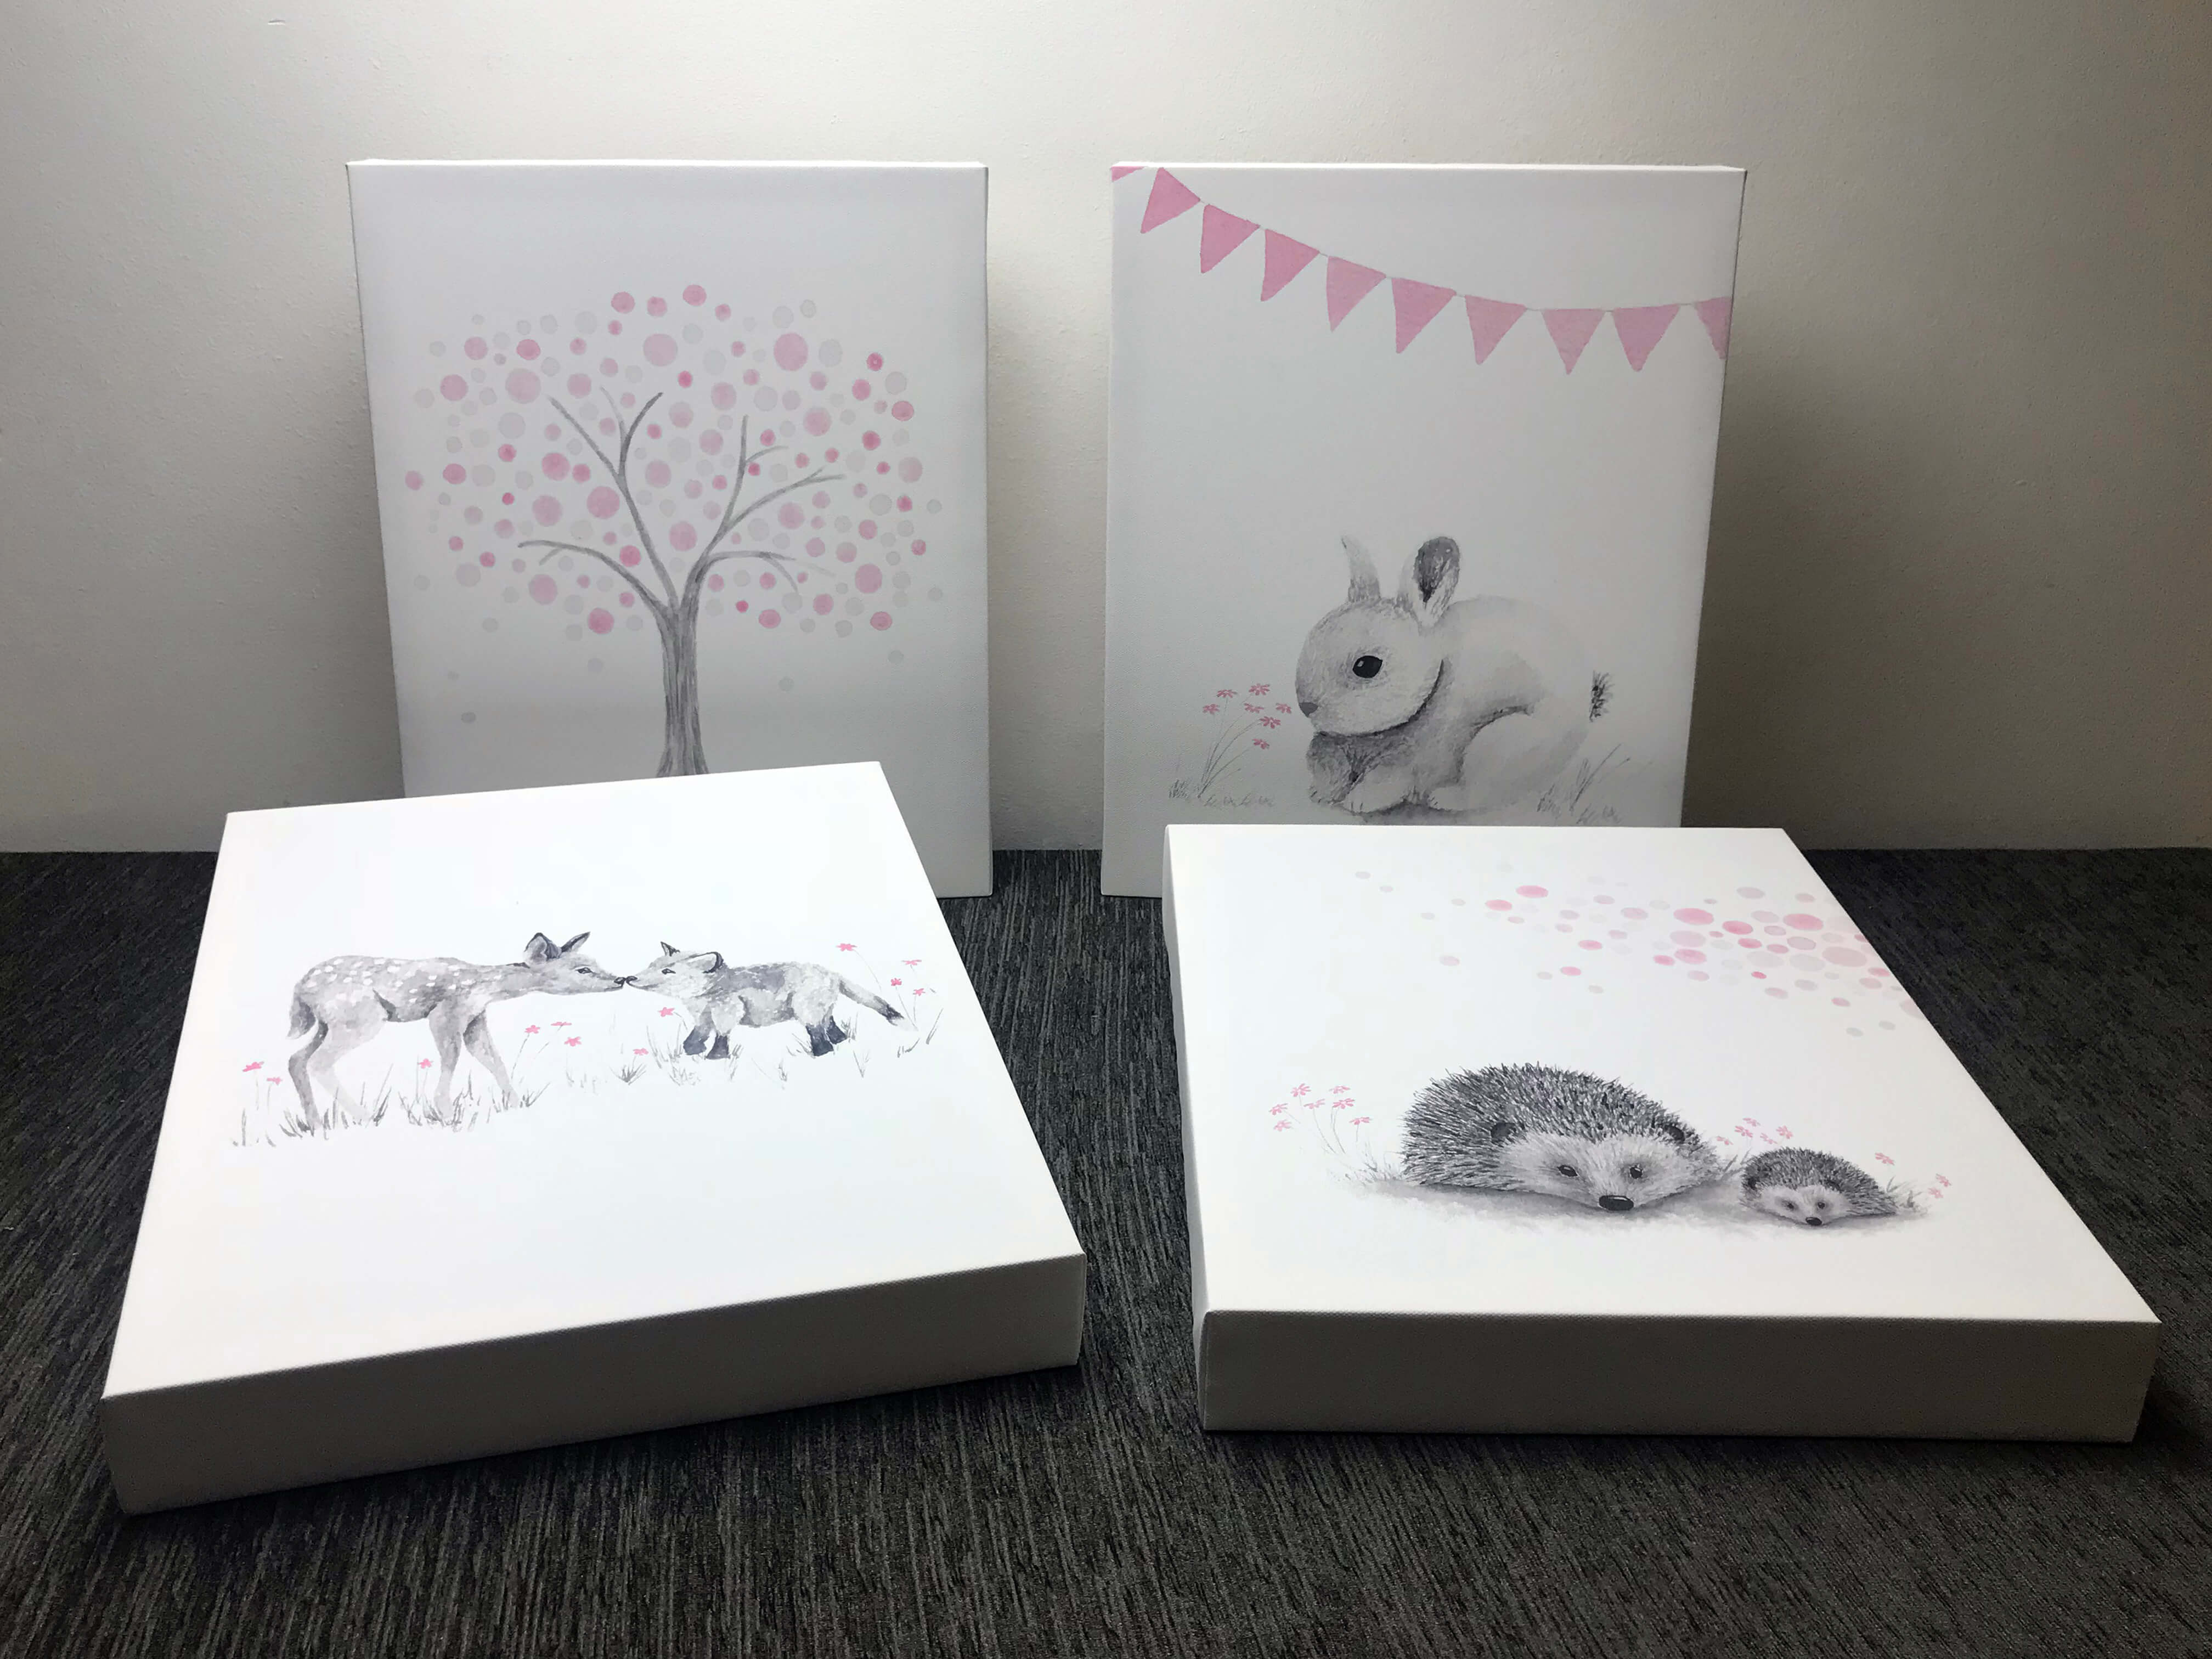 Illustrations of animals perfect for a babies nursery wall art to finish the design by incorporatingthe colour